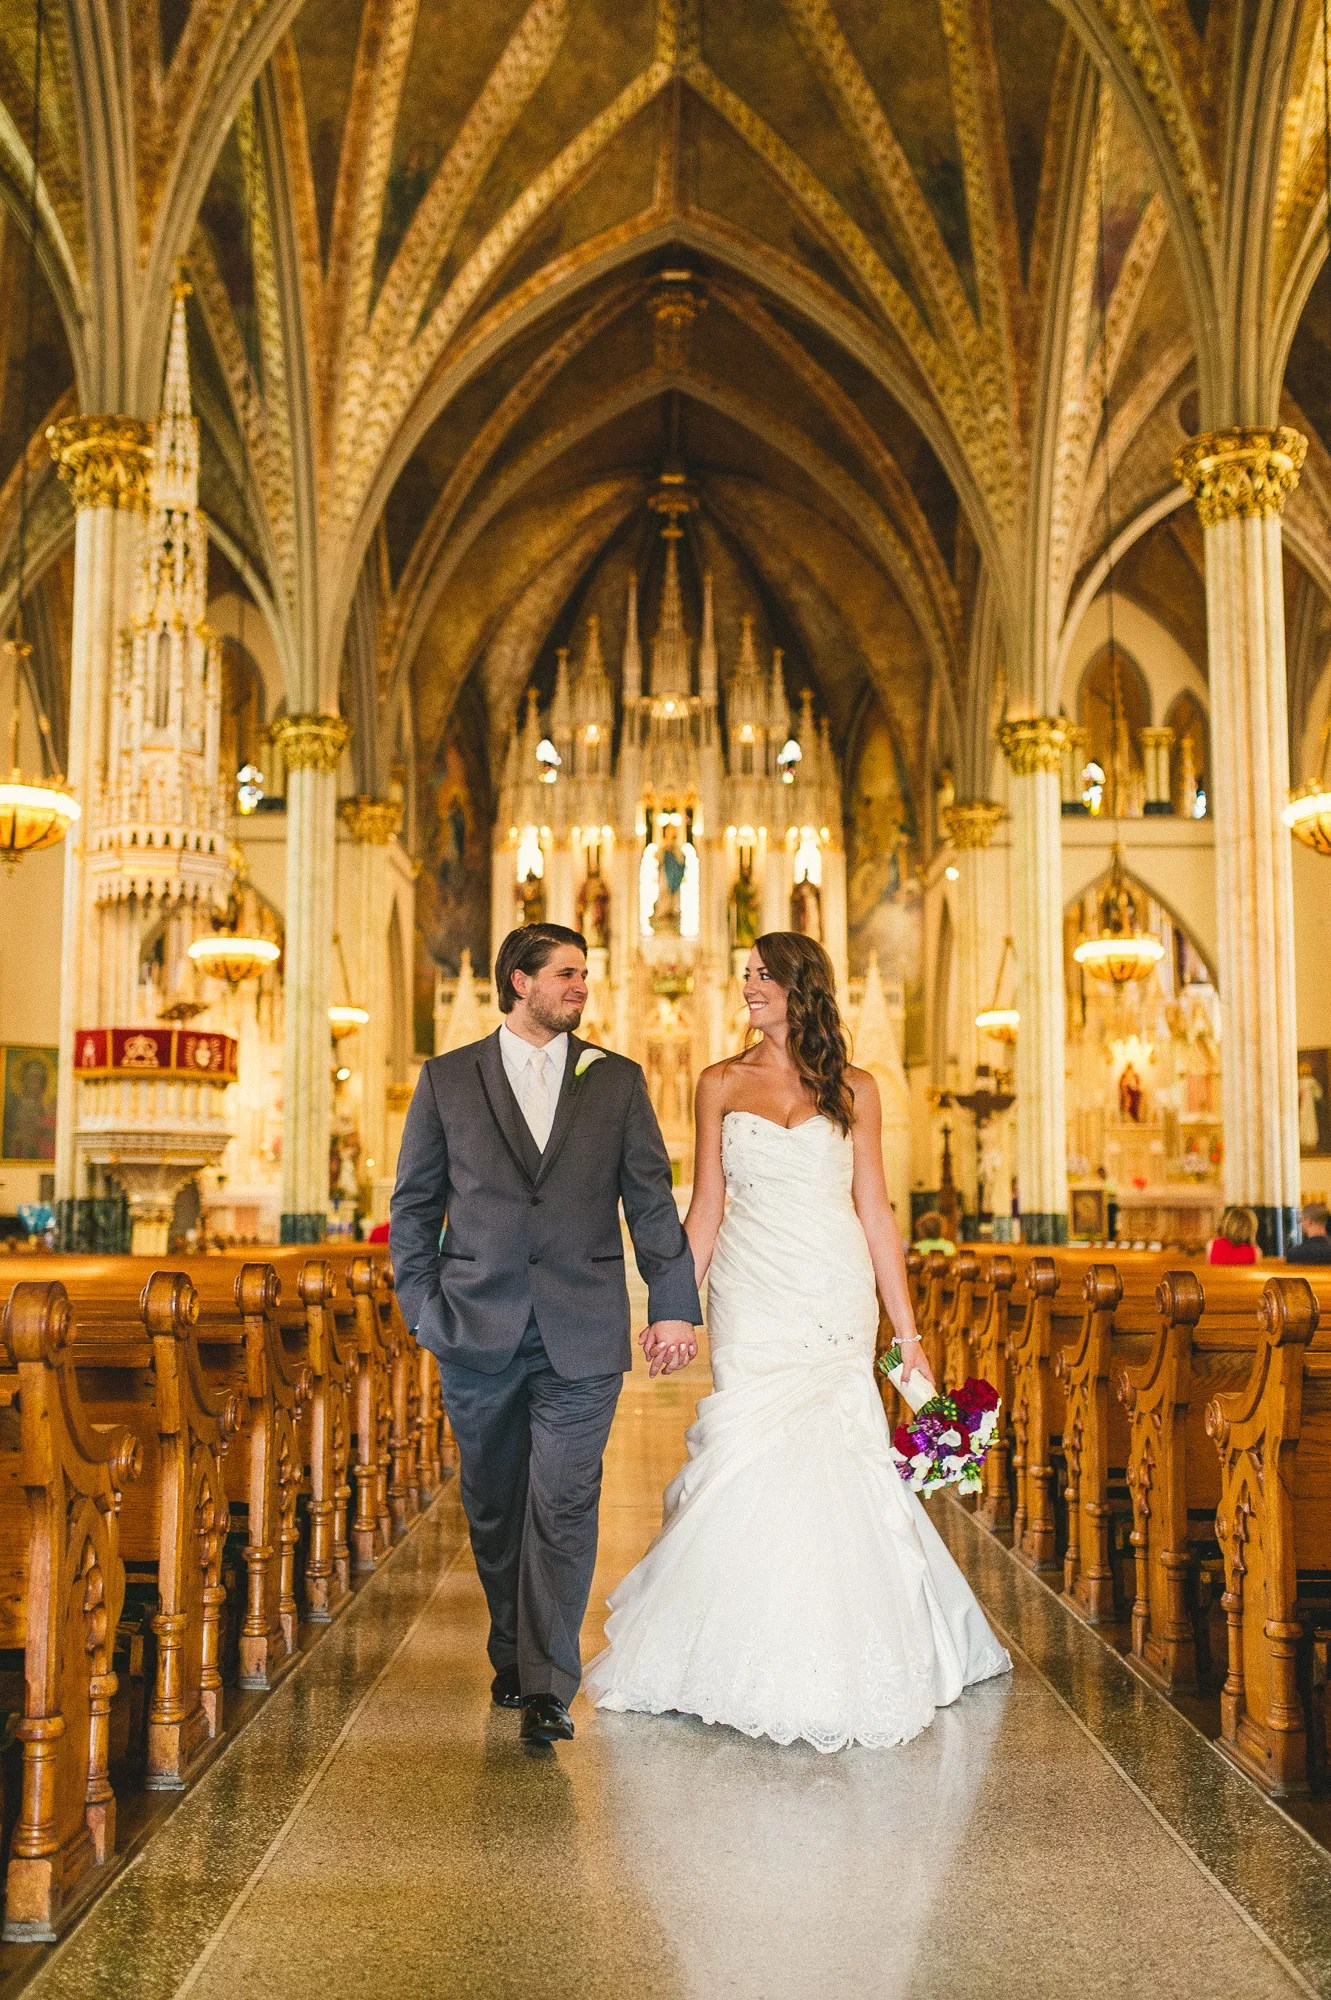 A Romantic Church Wedding At Sweetest Heart Of Mary Catholic Church In Detroit Michigan